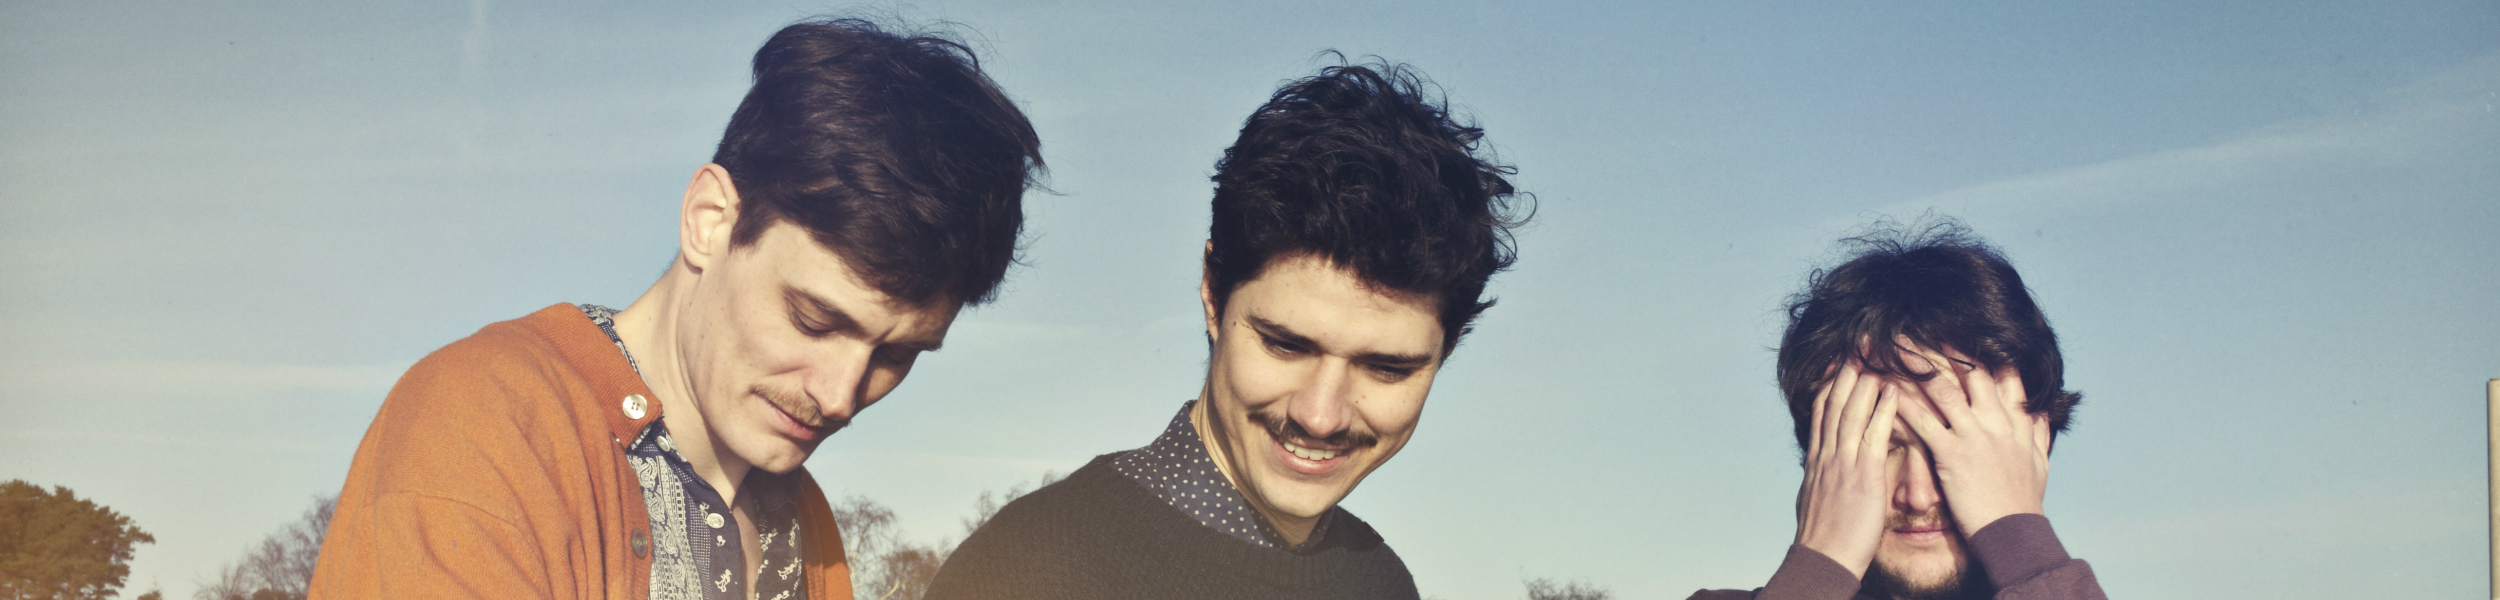 Efterklang - The Year In Review: Efterklang